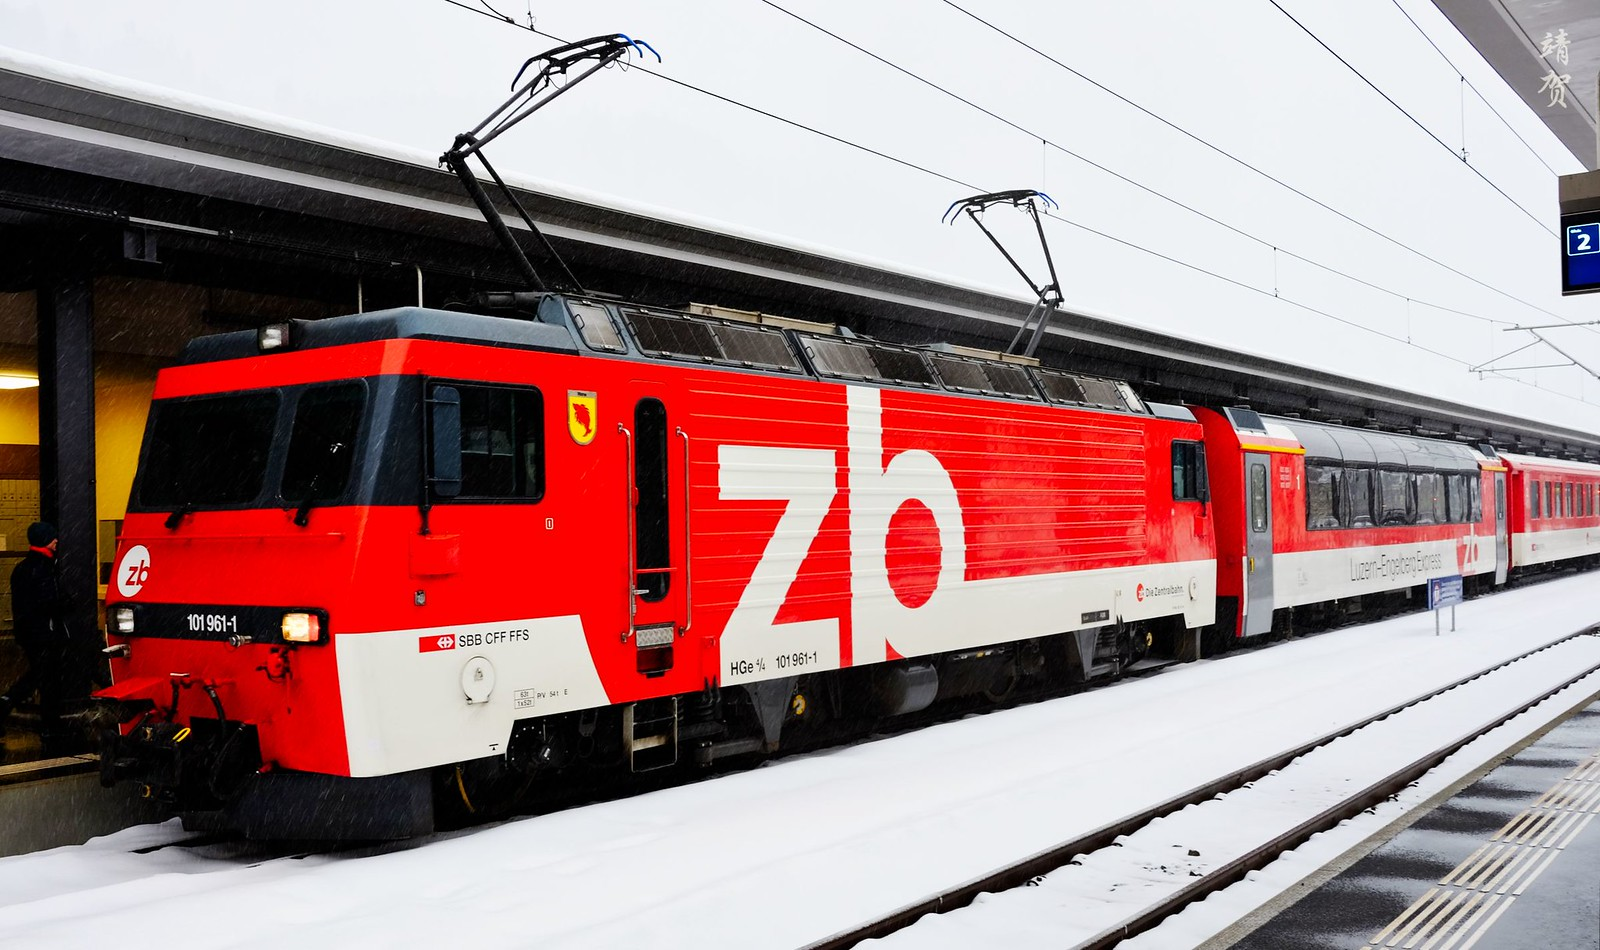 Zentralbahn train